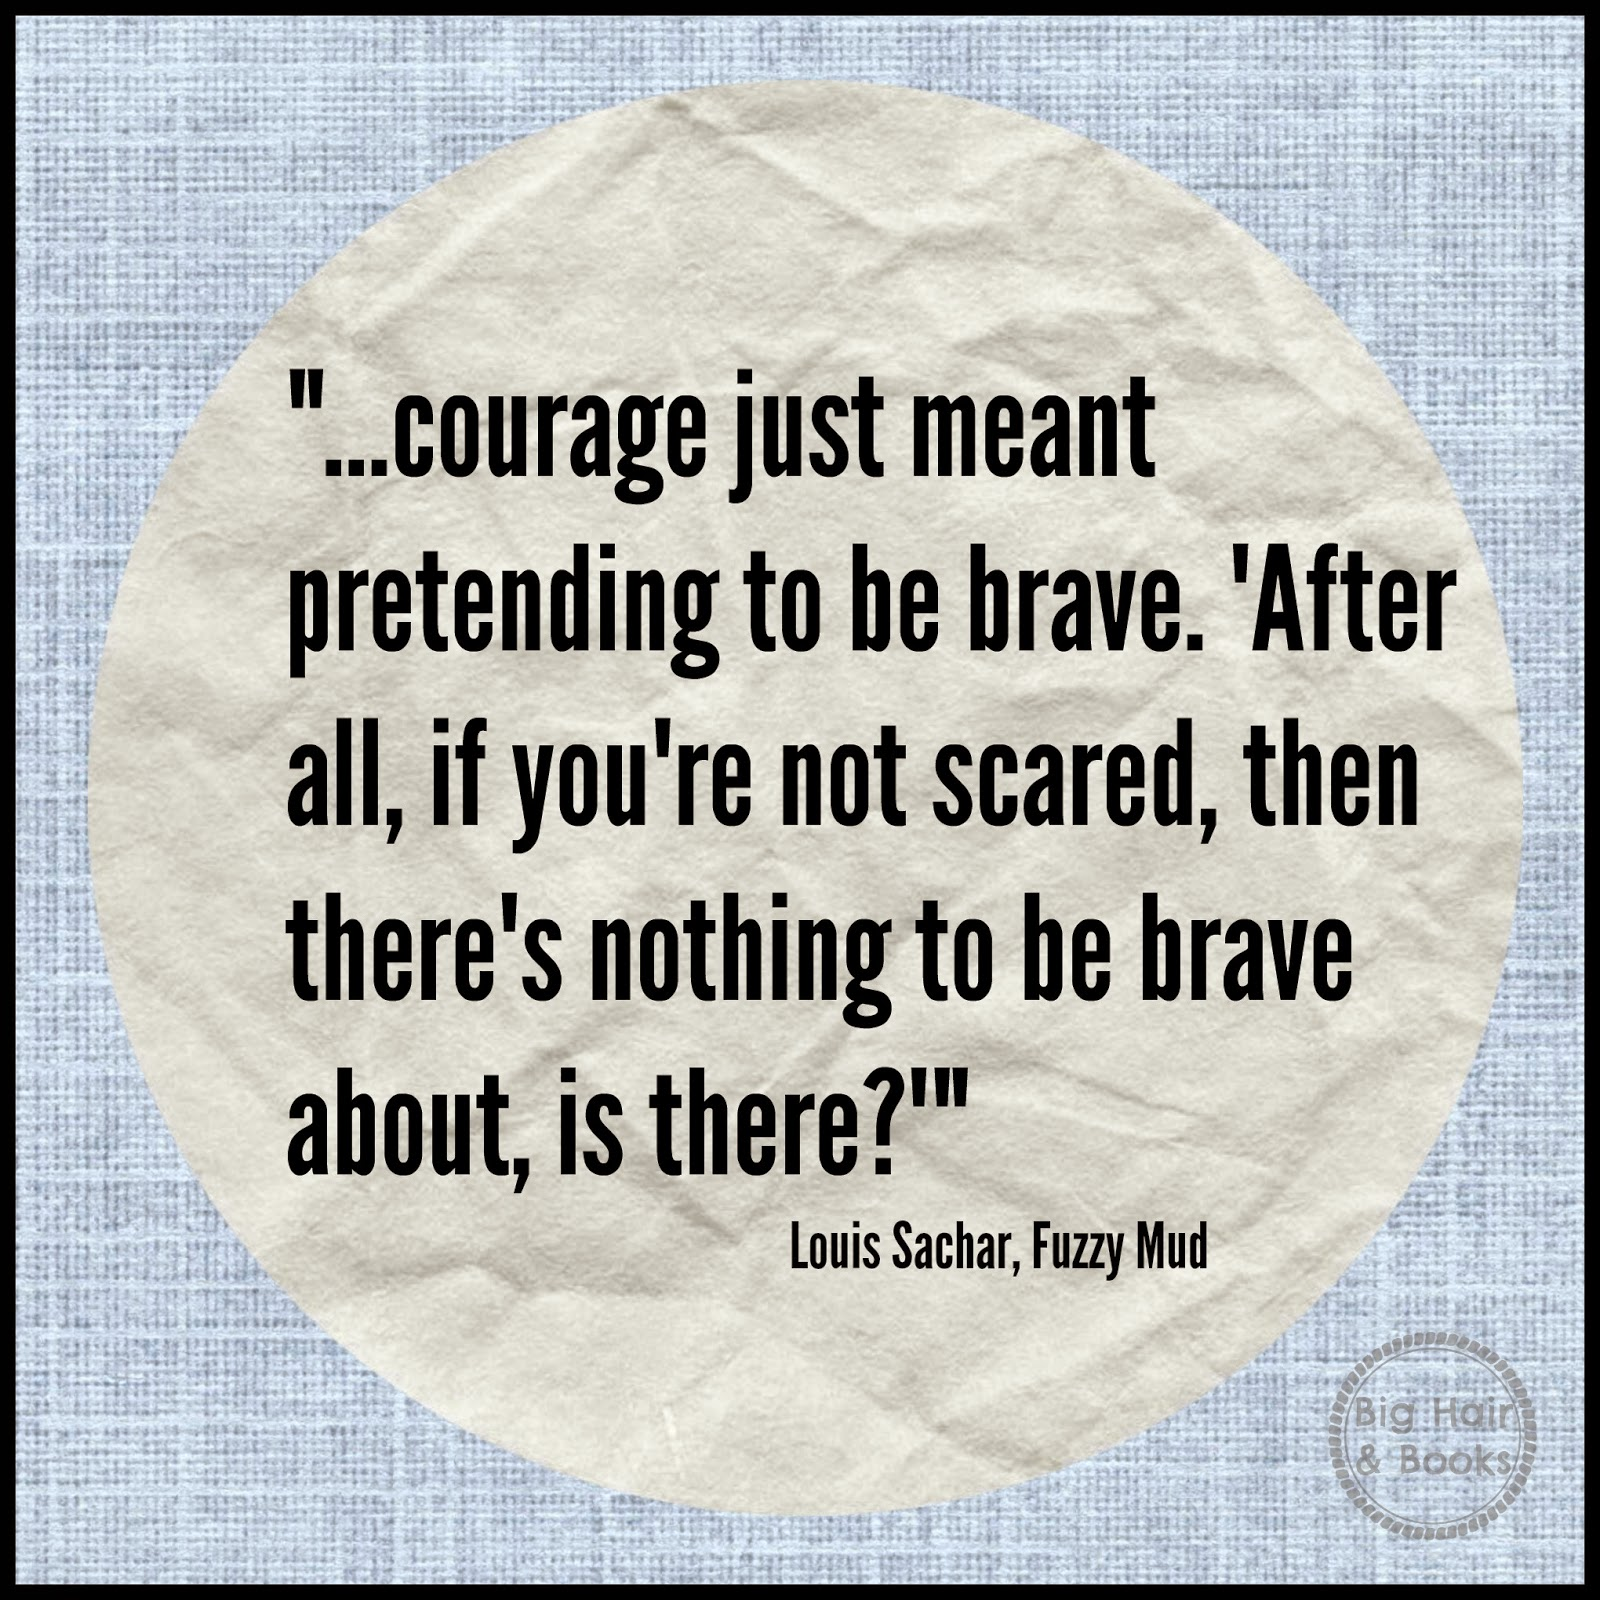 Courage quote from Fuzzy Mud by Louis Sachar #courage #bravery #fear